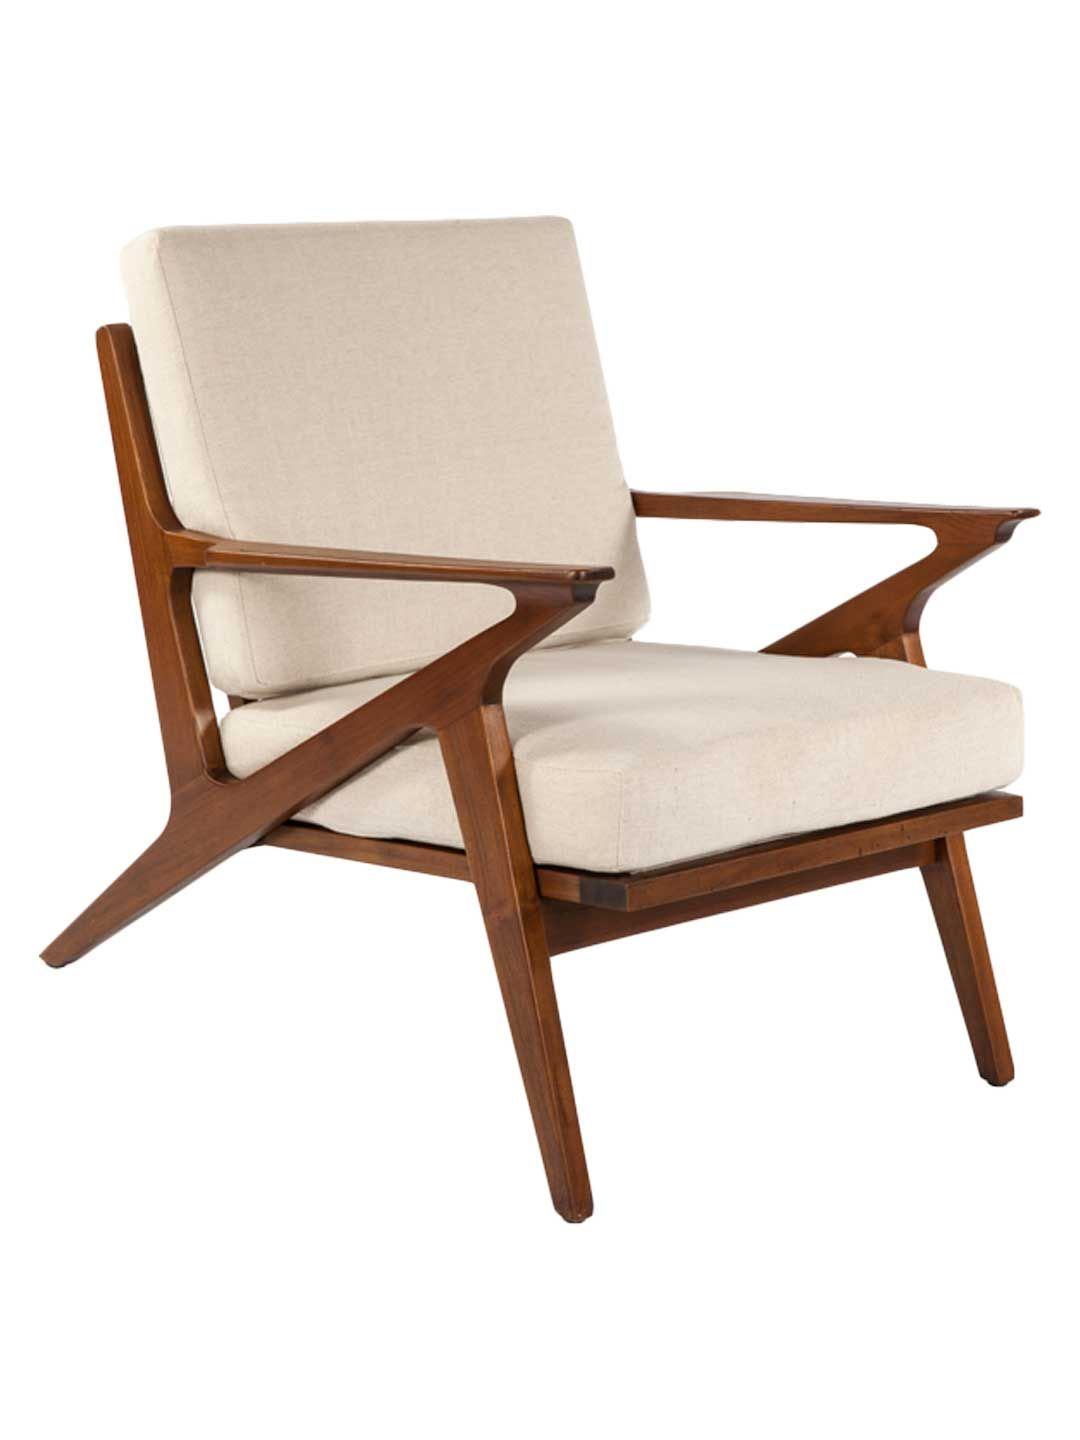 Tamholt Lounge Chair By Control Brand At Gilt Chair Furniture Lounge